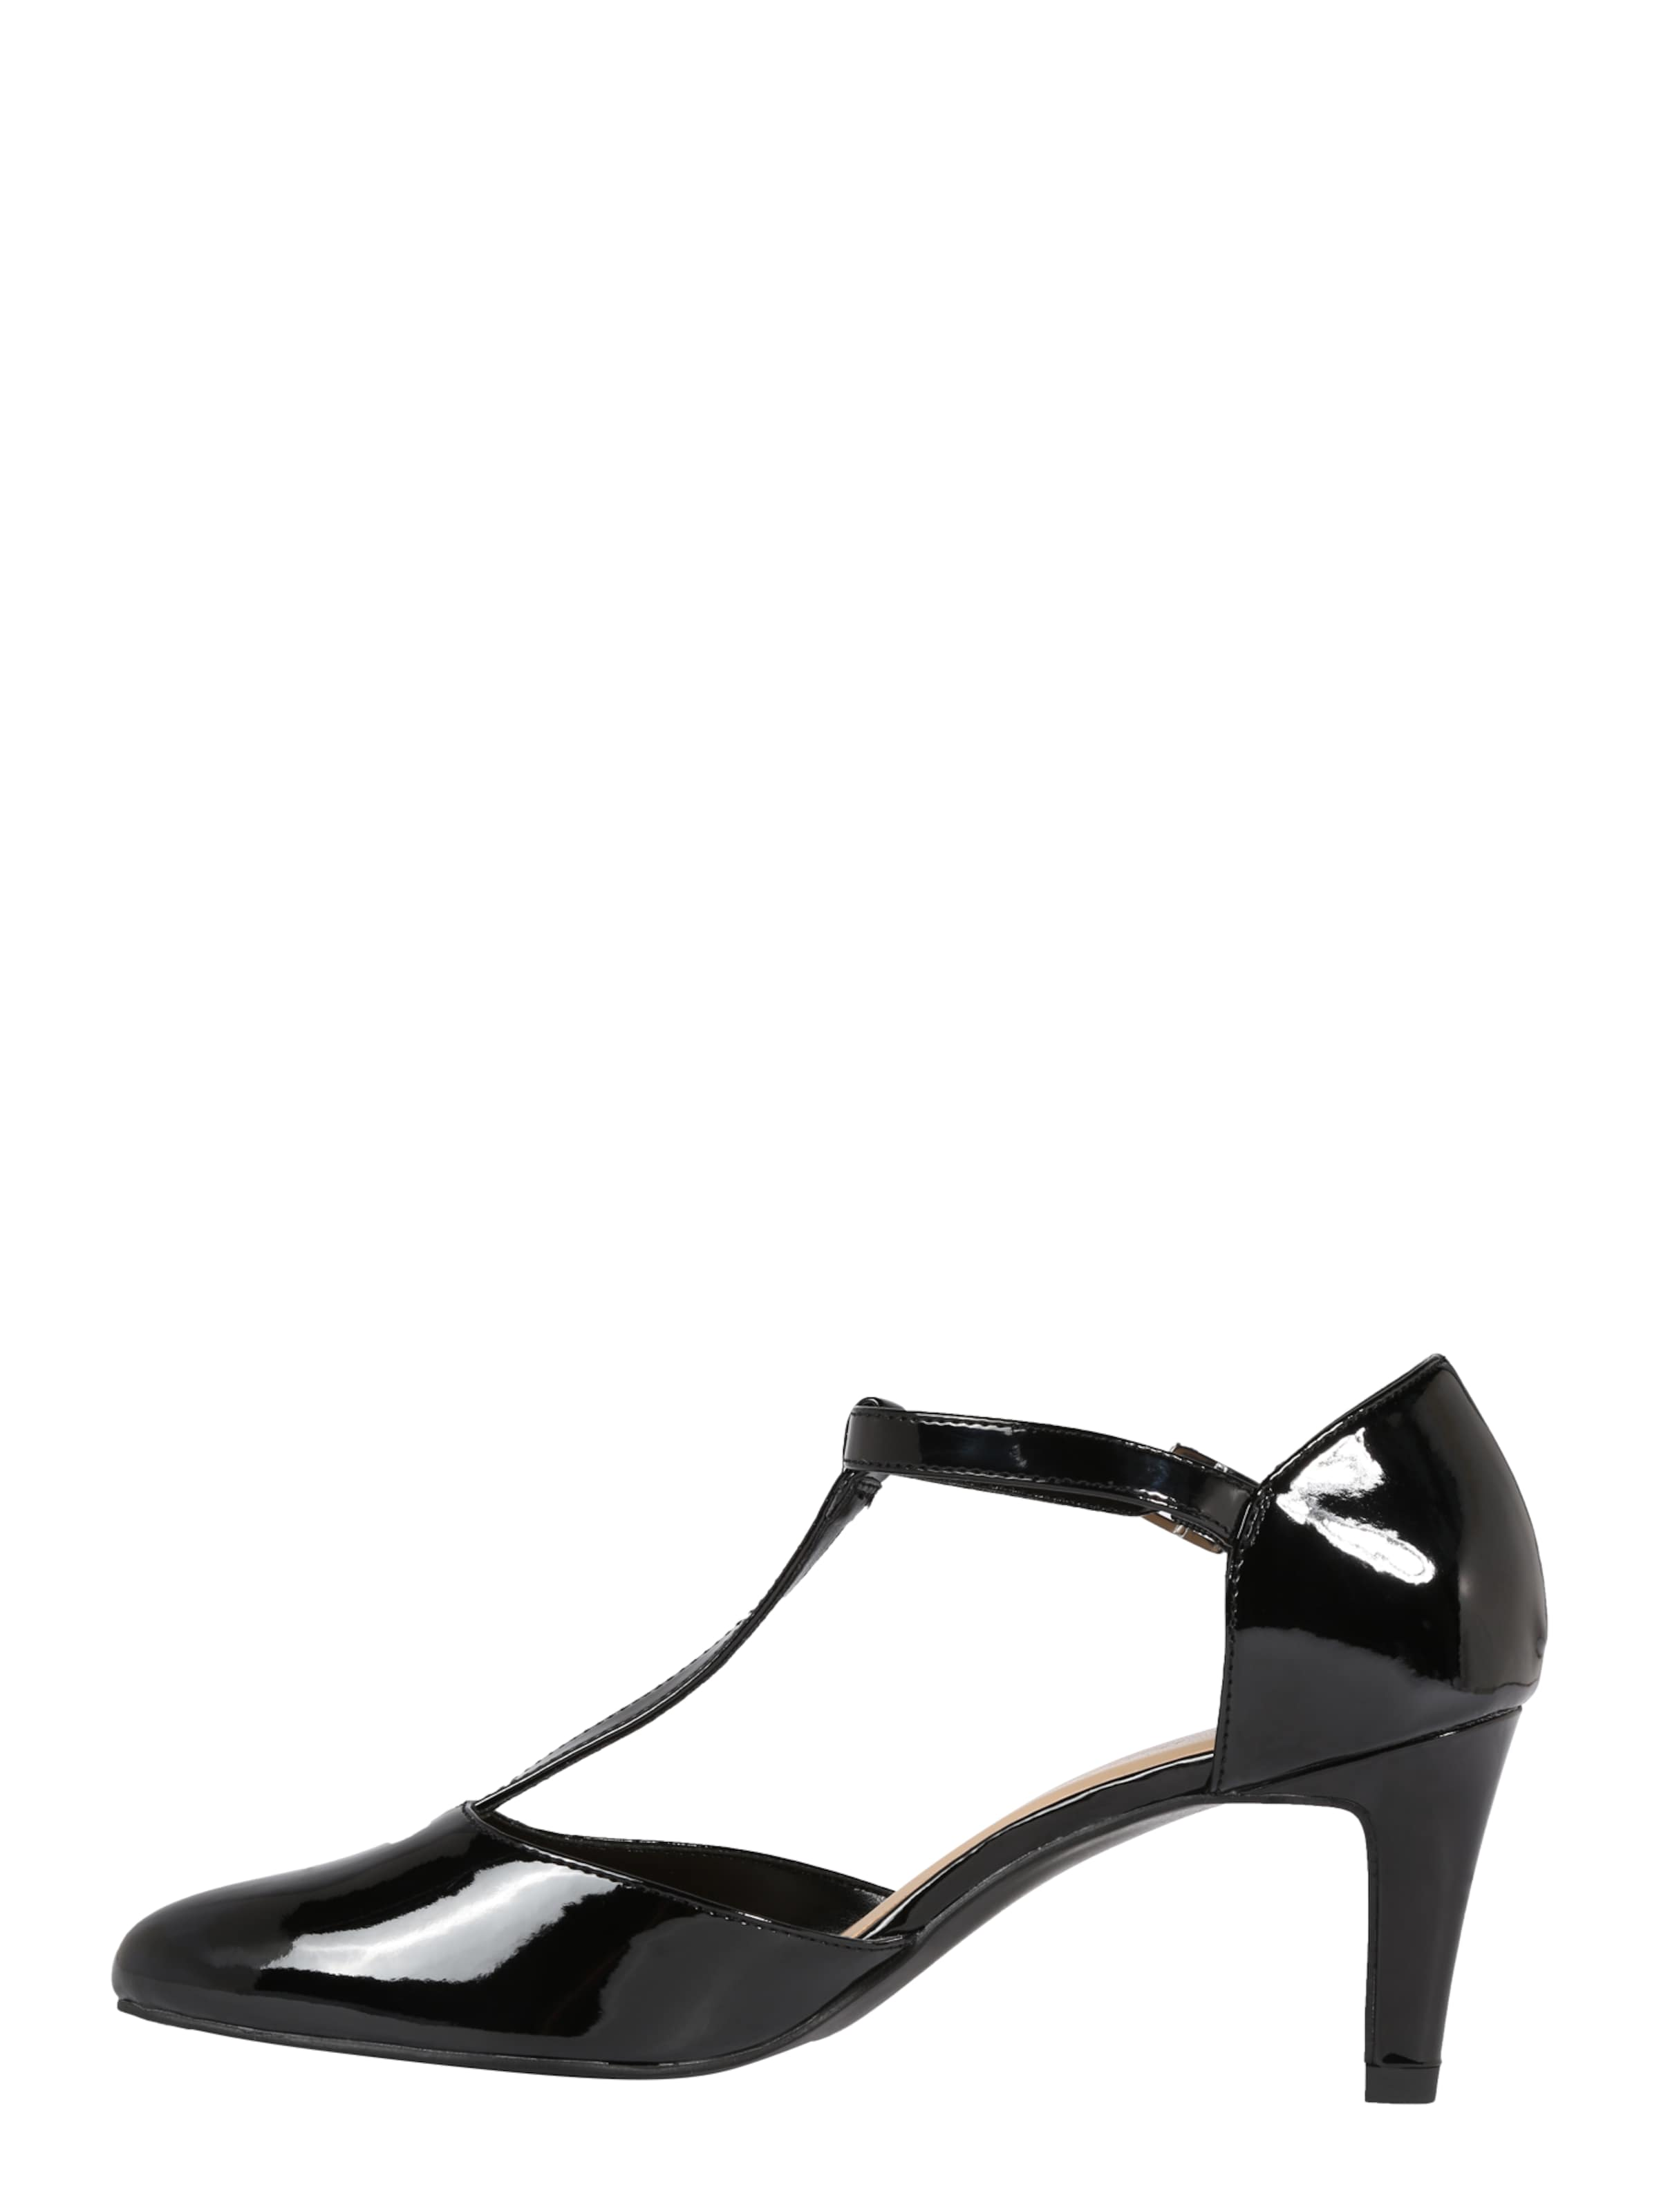 About Schwarz You 'jasmine' In Pumps TKFc1Jl